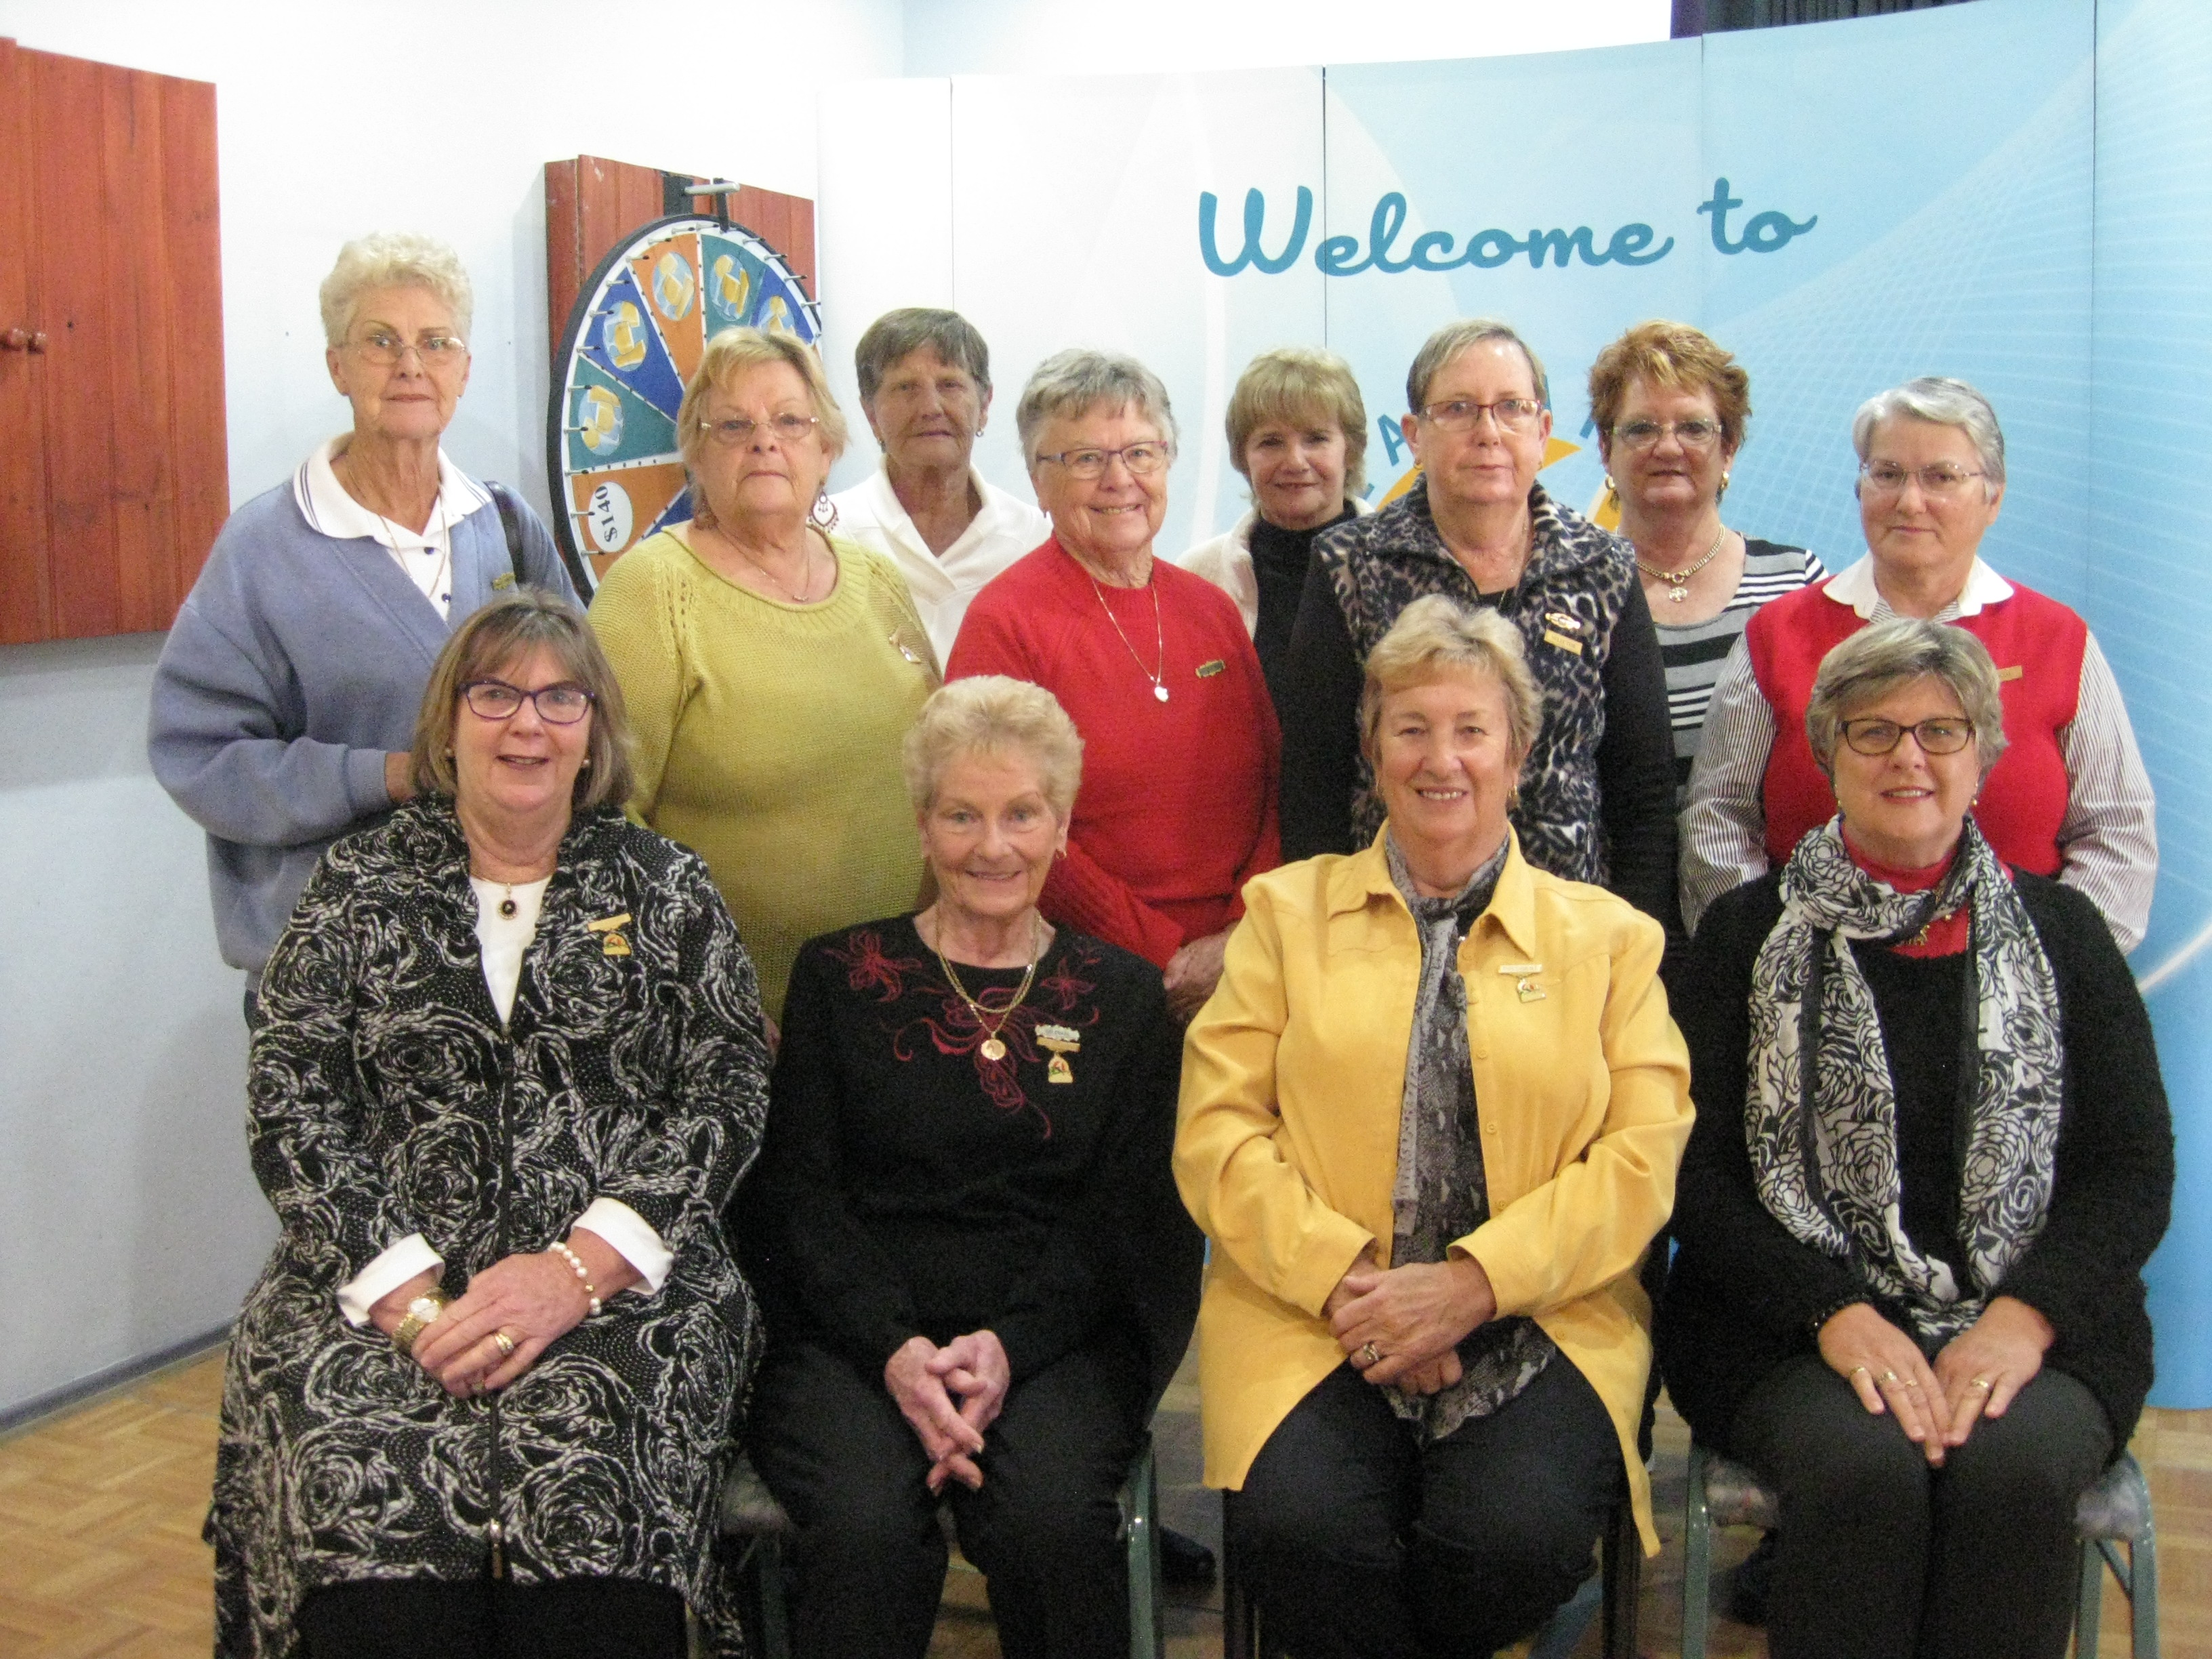 Executive Committee, Treasurer Jan Kuzmic, Vice President Margaret Smith, President Robyn Webster and Secretary Karen McPhie, with members of the various committees.